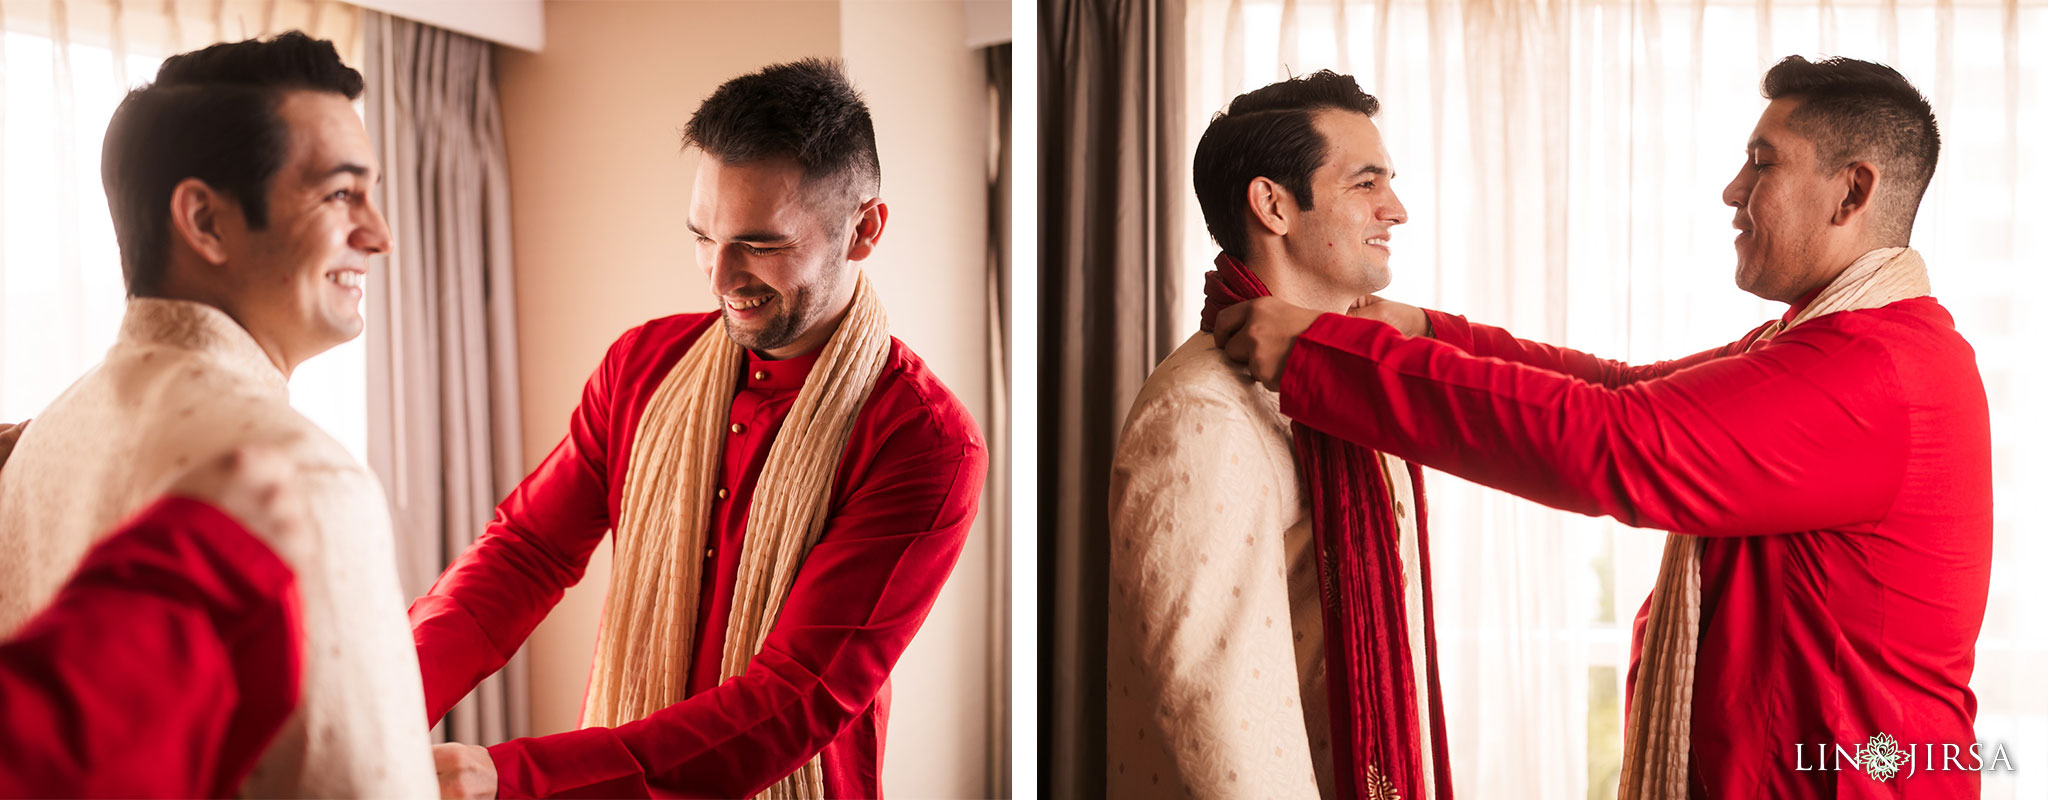 11 Union Station Los Angeles Indian Wedding Photography